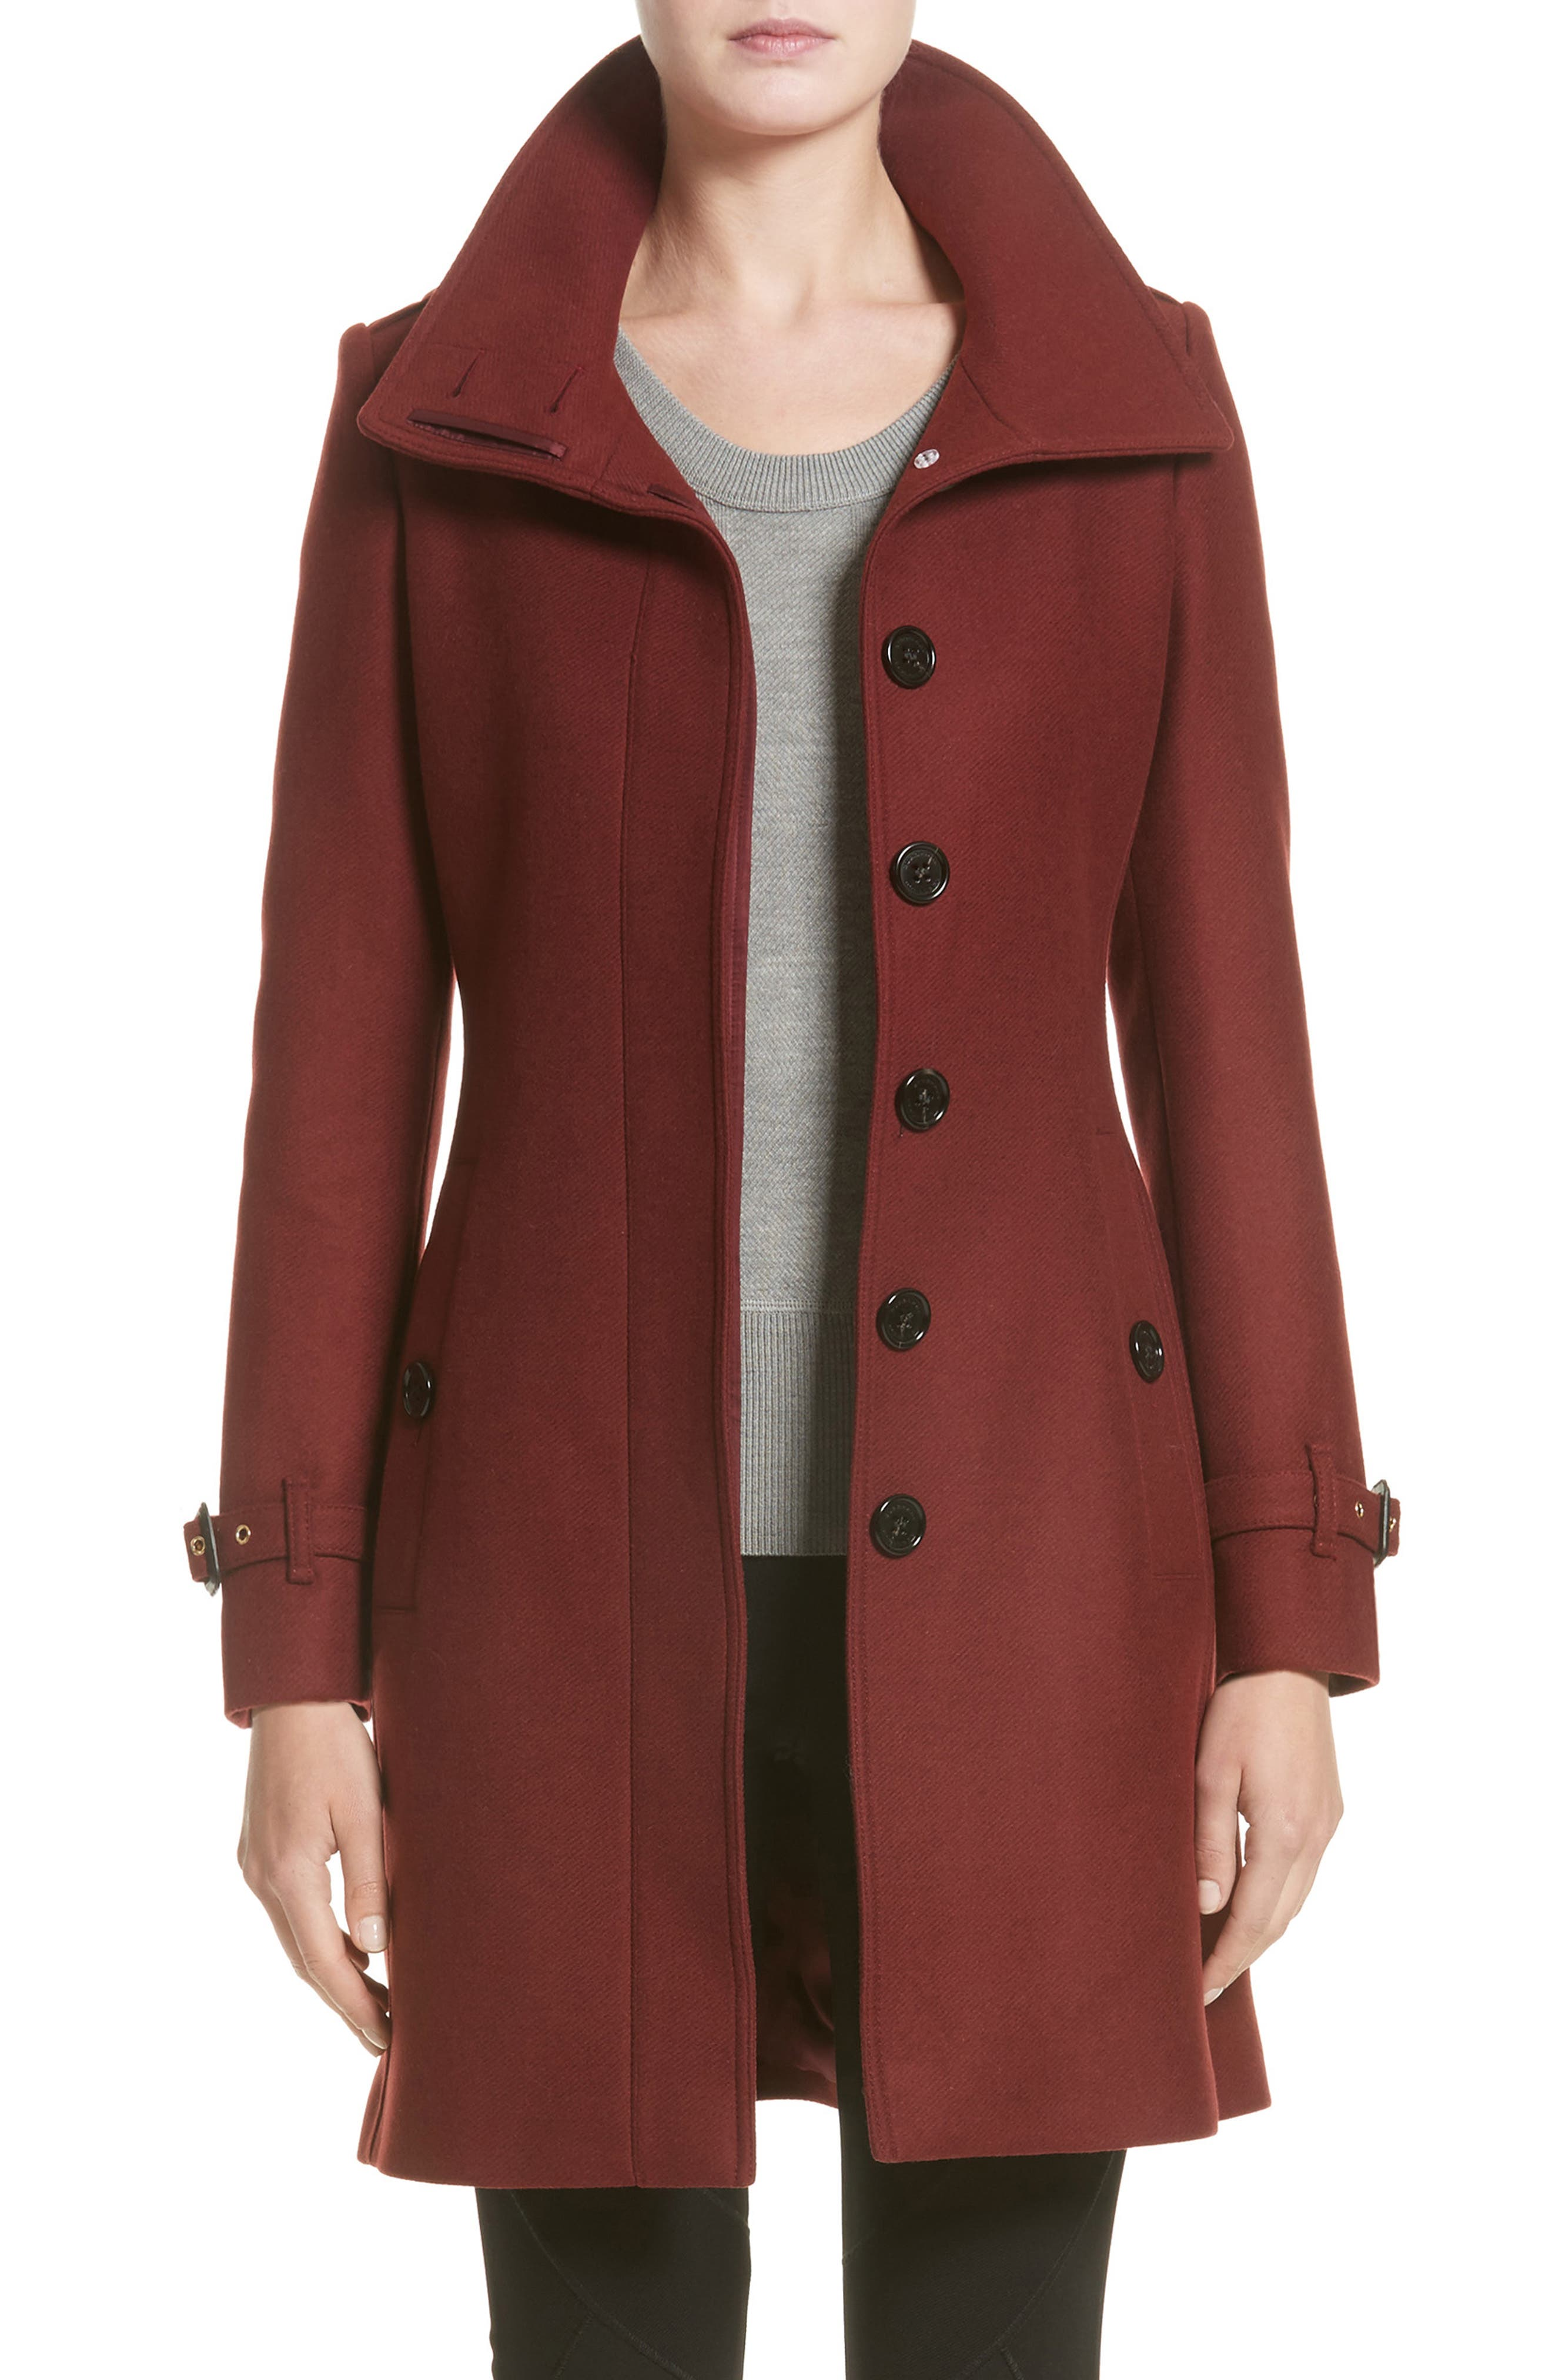 Burberry Gibbsmoore Funnel Collar Trench Coat (Nordstrom Exclusive)